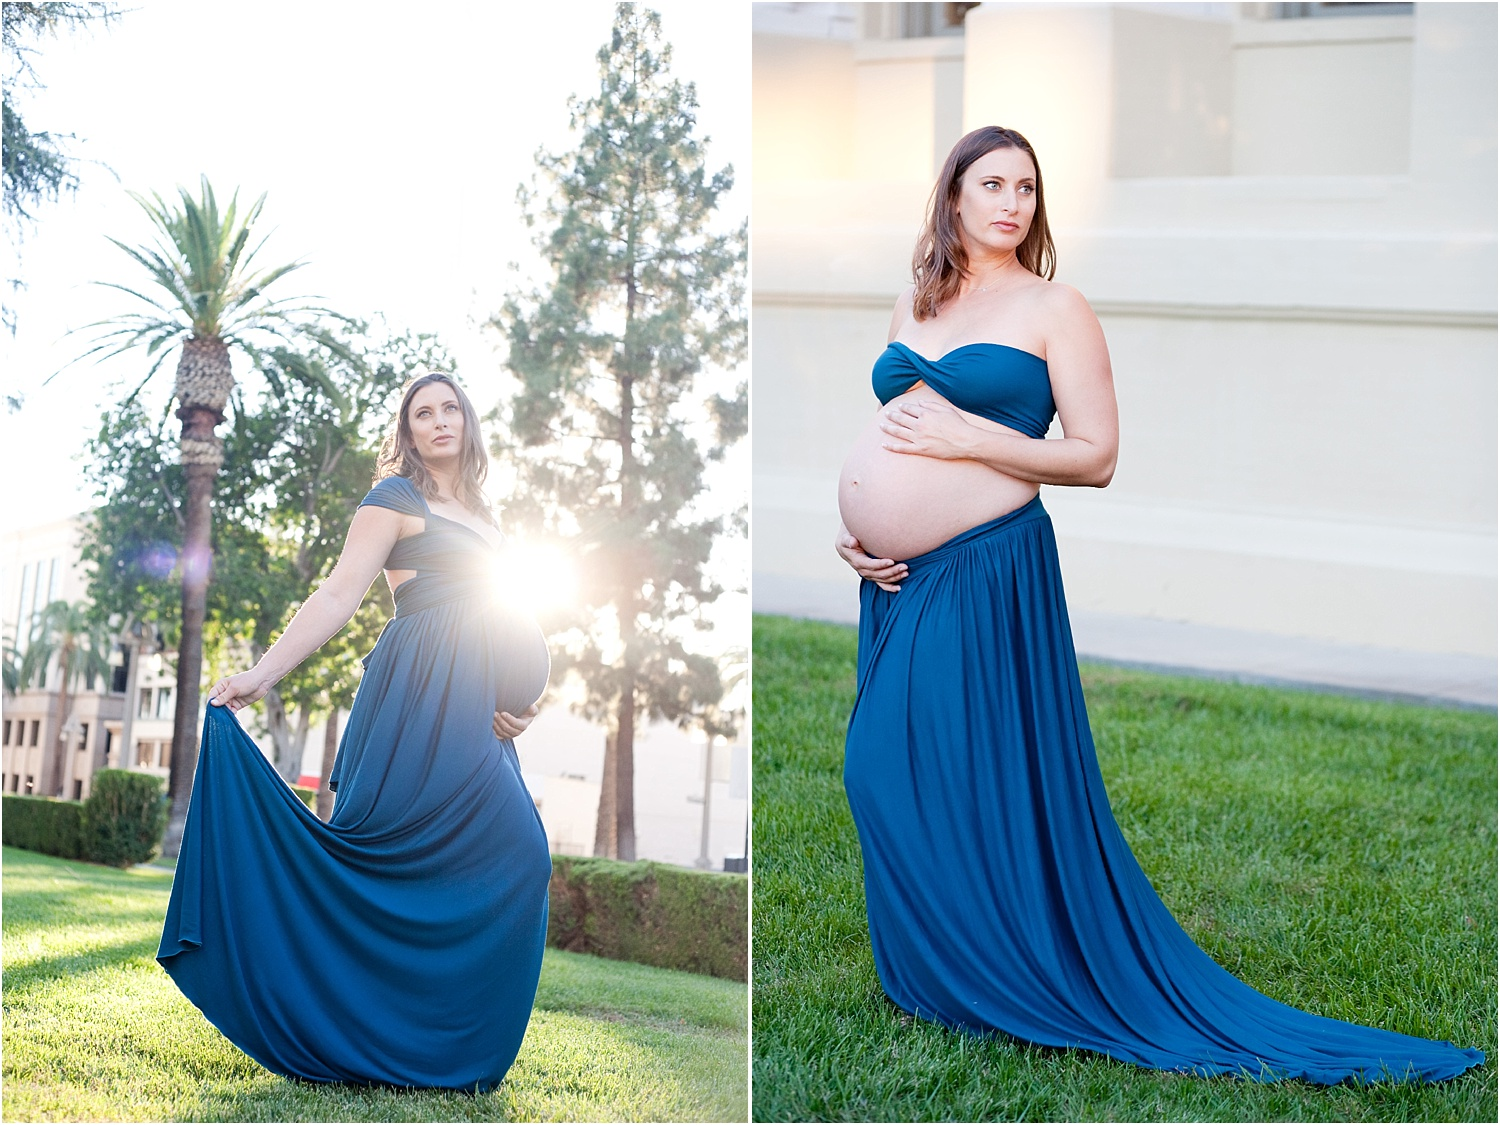 Maternity Session Tips For Better Client Experience 1